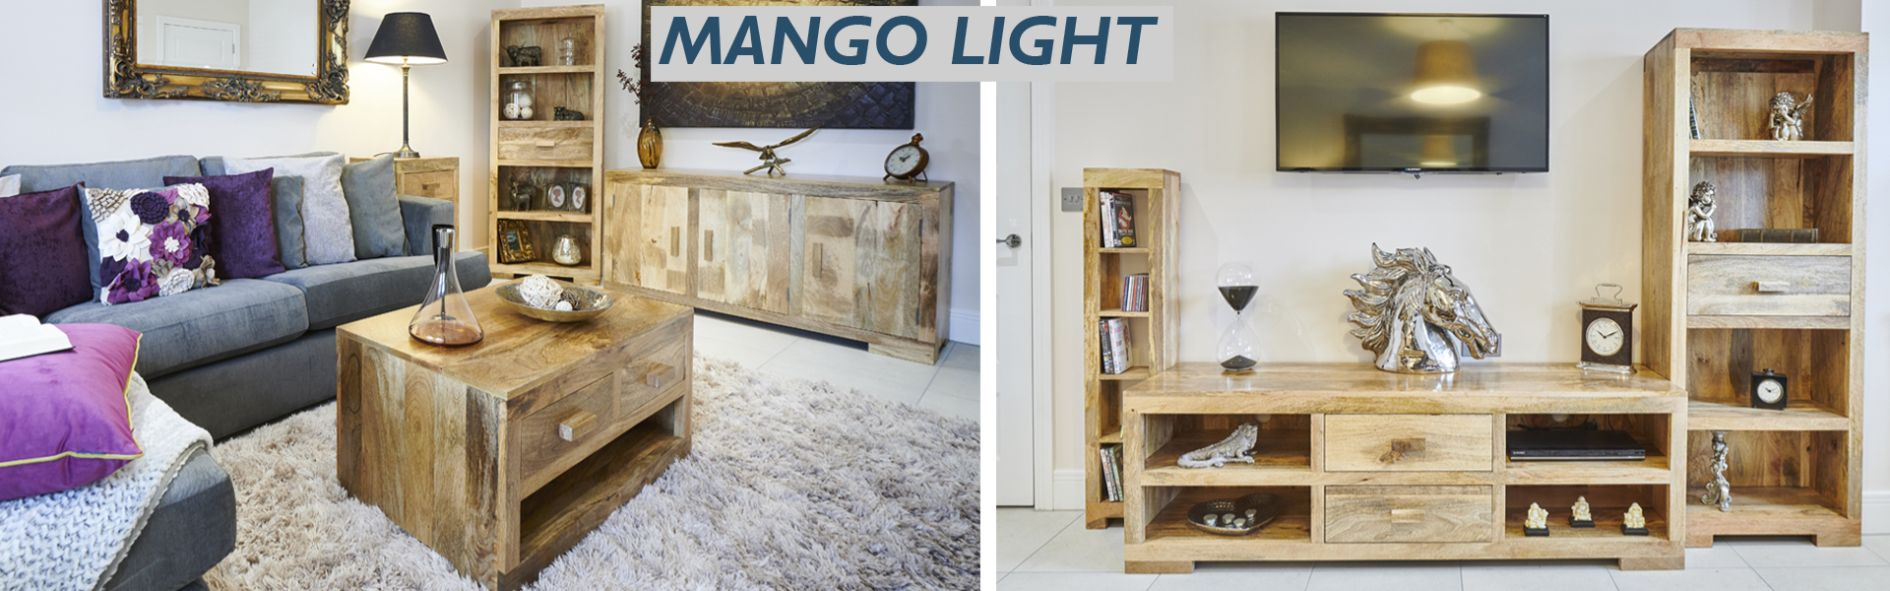 Mango Light Banner